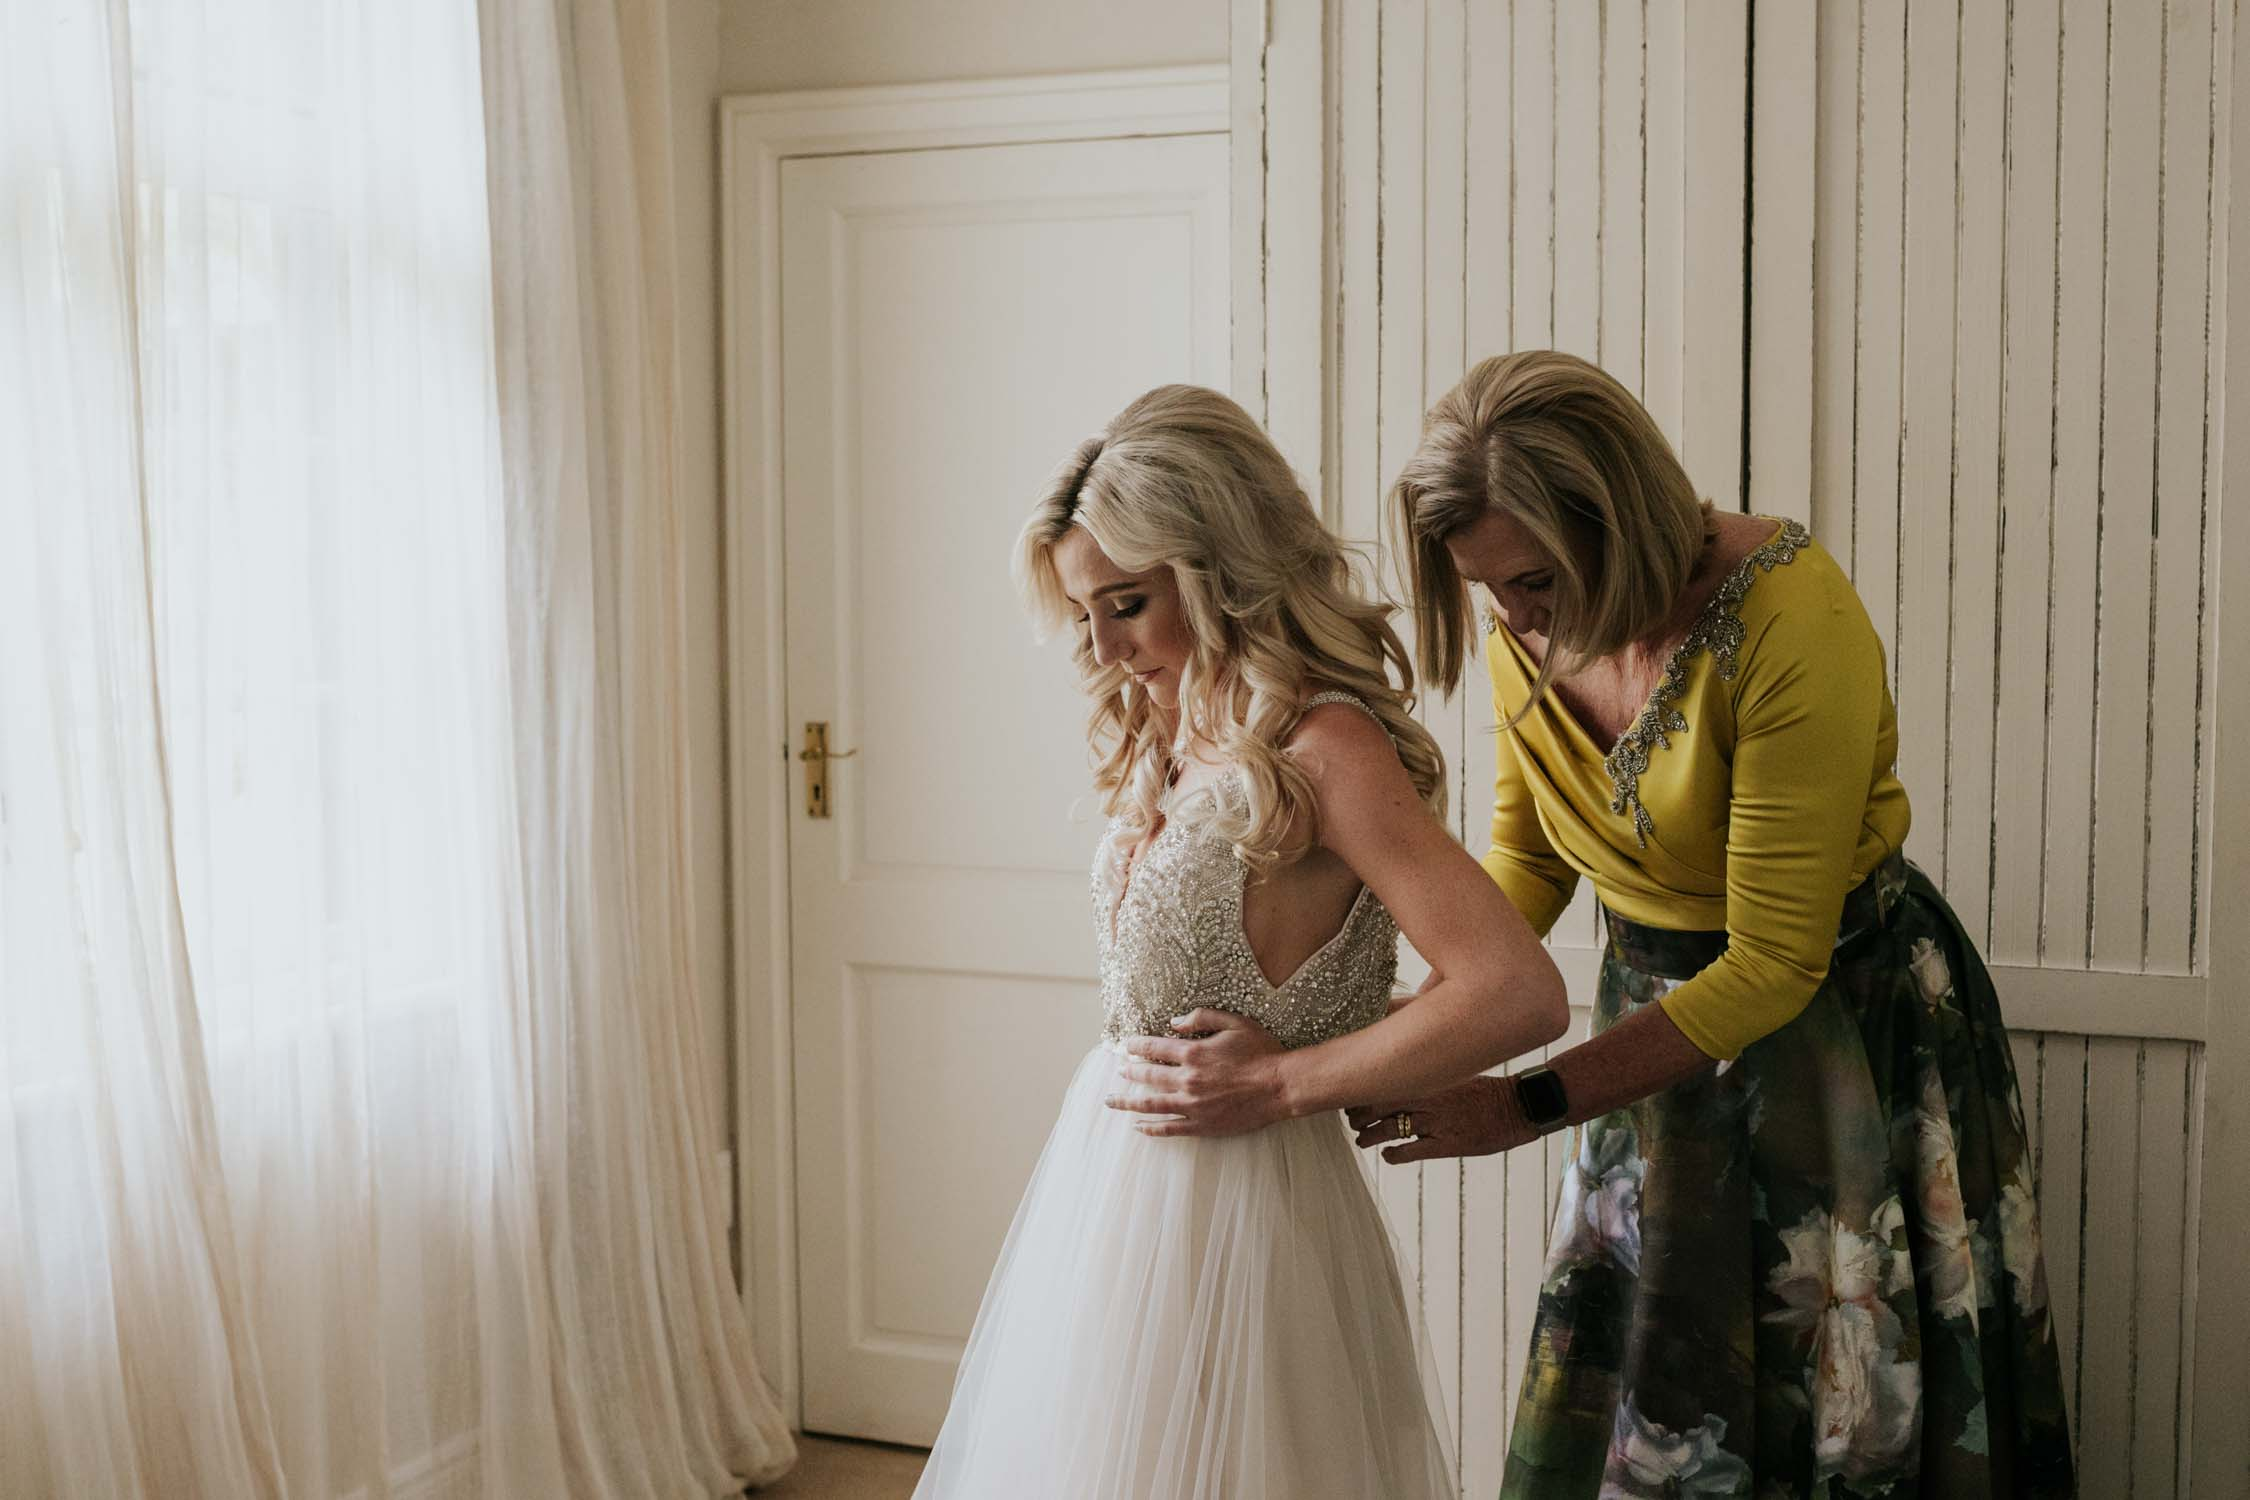 Mother of the bride helping her daughter get into her wedding dress. They are standing in front of a window and bride is wearing a see through dress with shorts underneath the skirt.